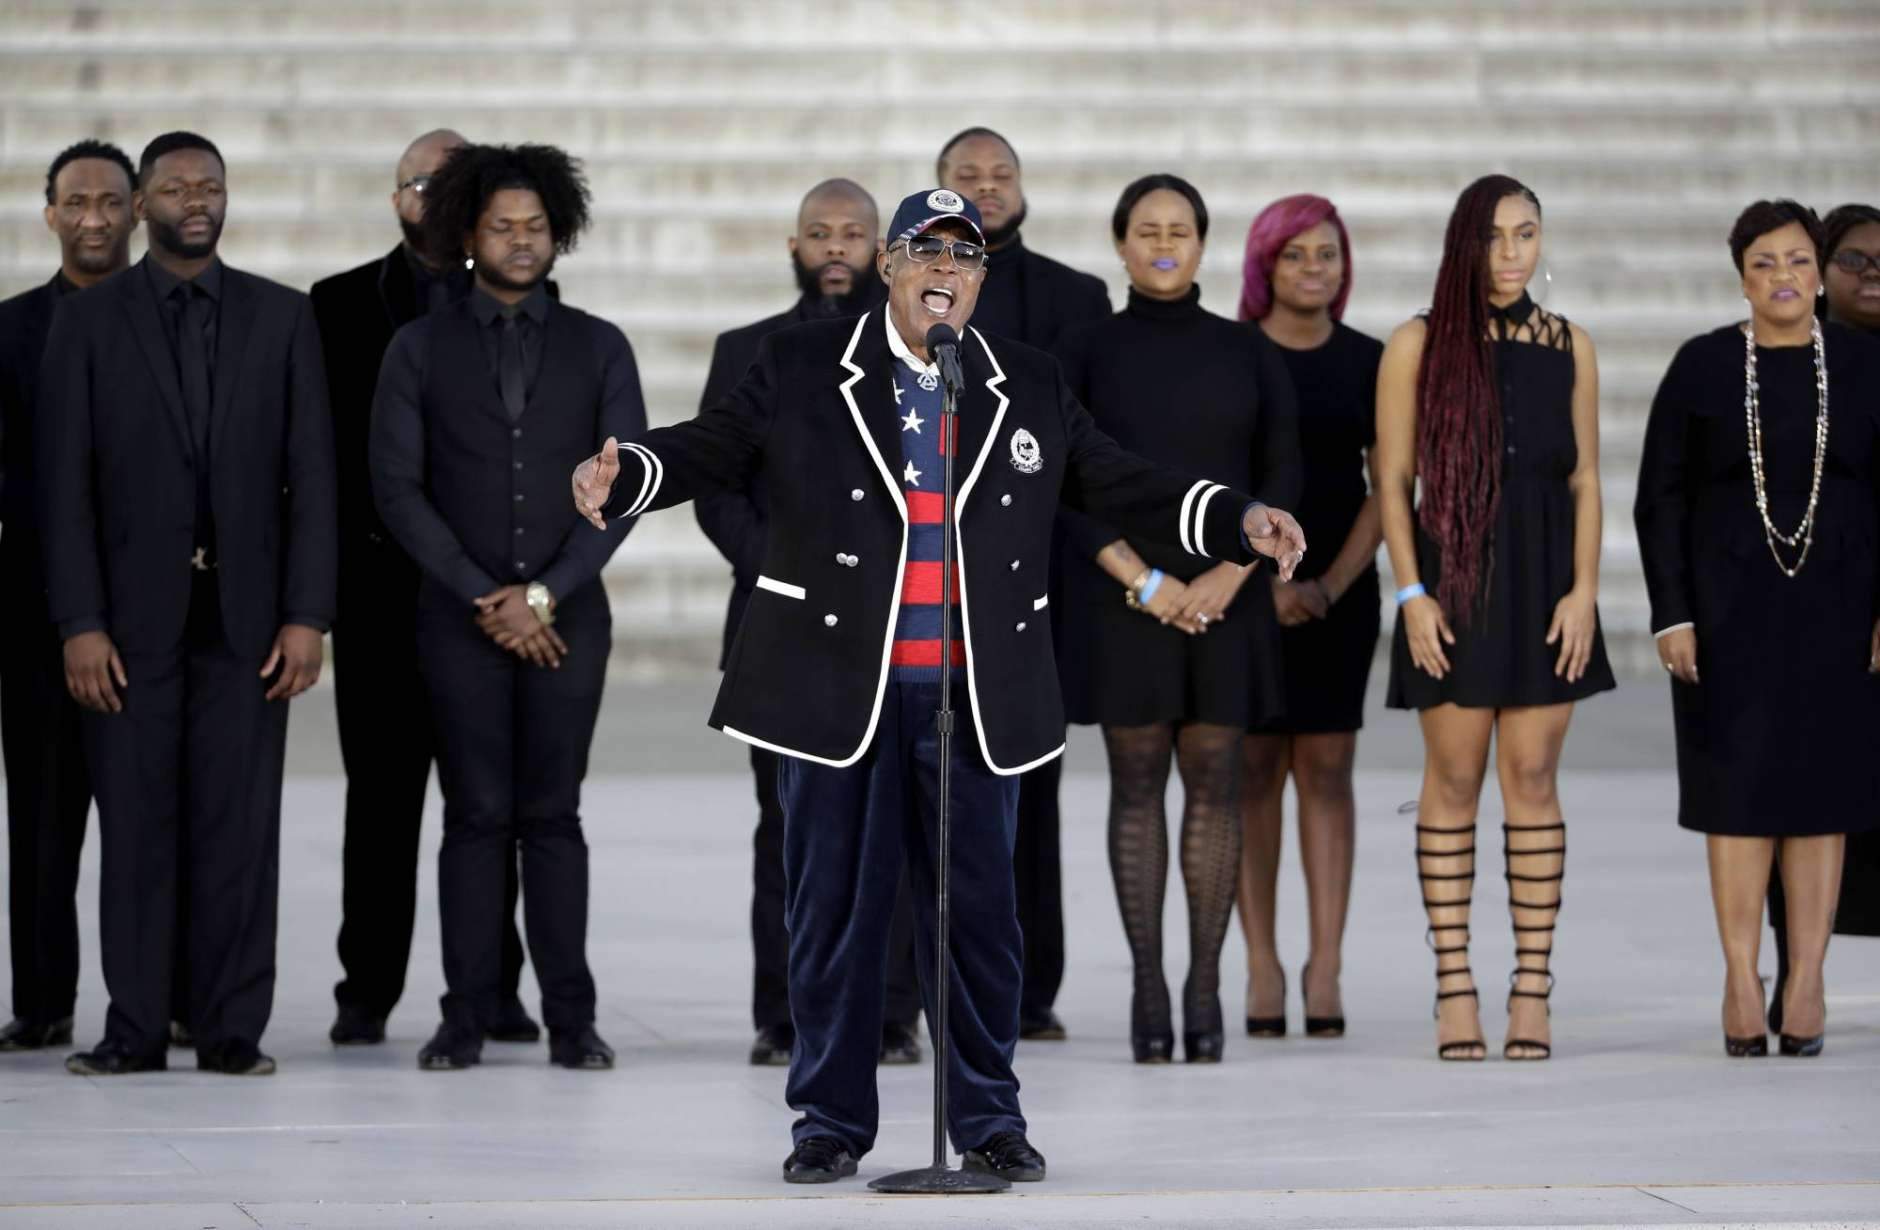 """Singer Sam Moore performs during a pre-Inaugural """"Make America Great Again! Welcome Celebration"""" at the Lincoln Memorial in Washington, Thursday, Jan. 19, 2017. (AP Photo/David J. Phillip)"""